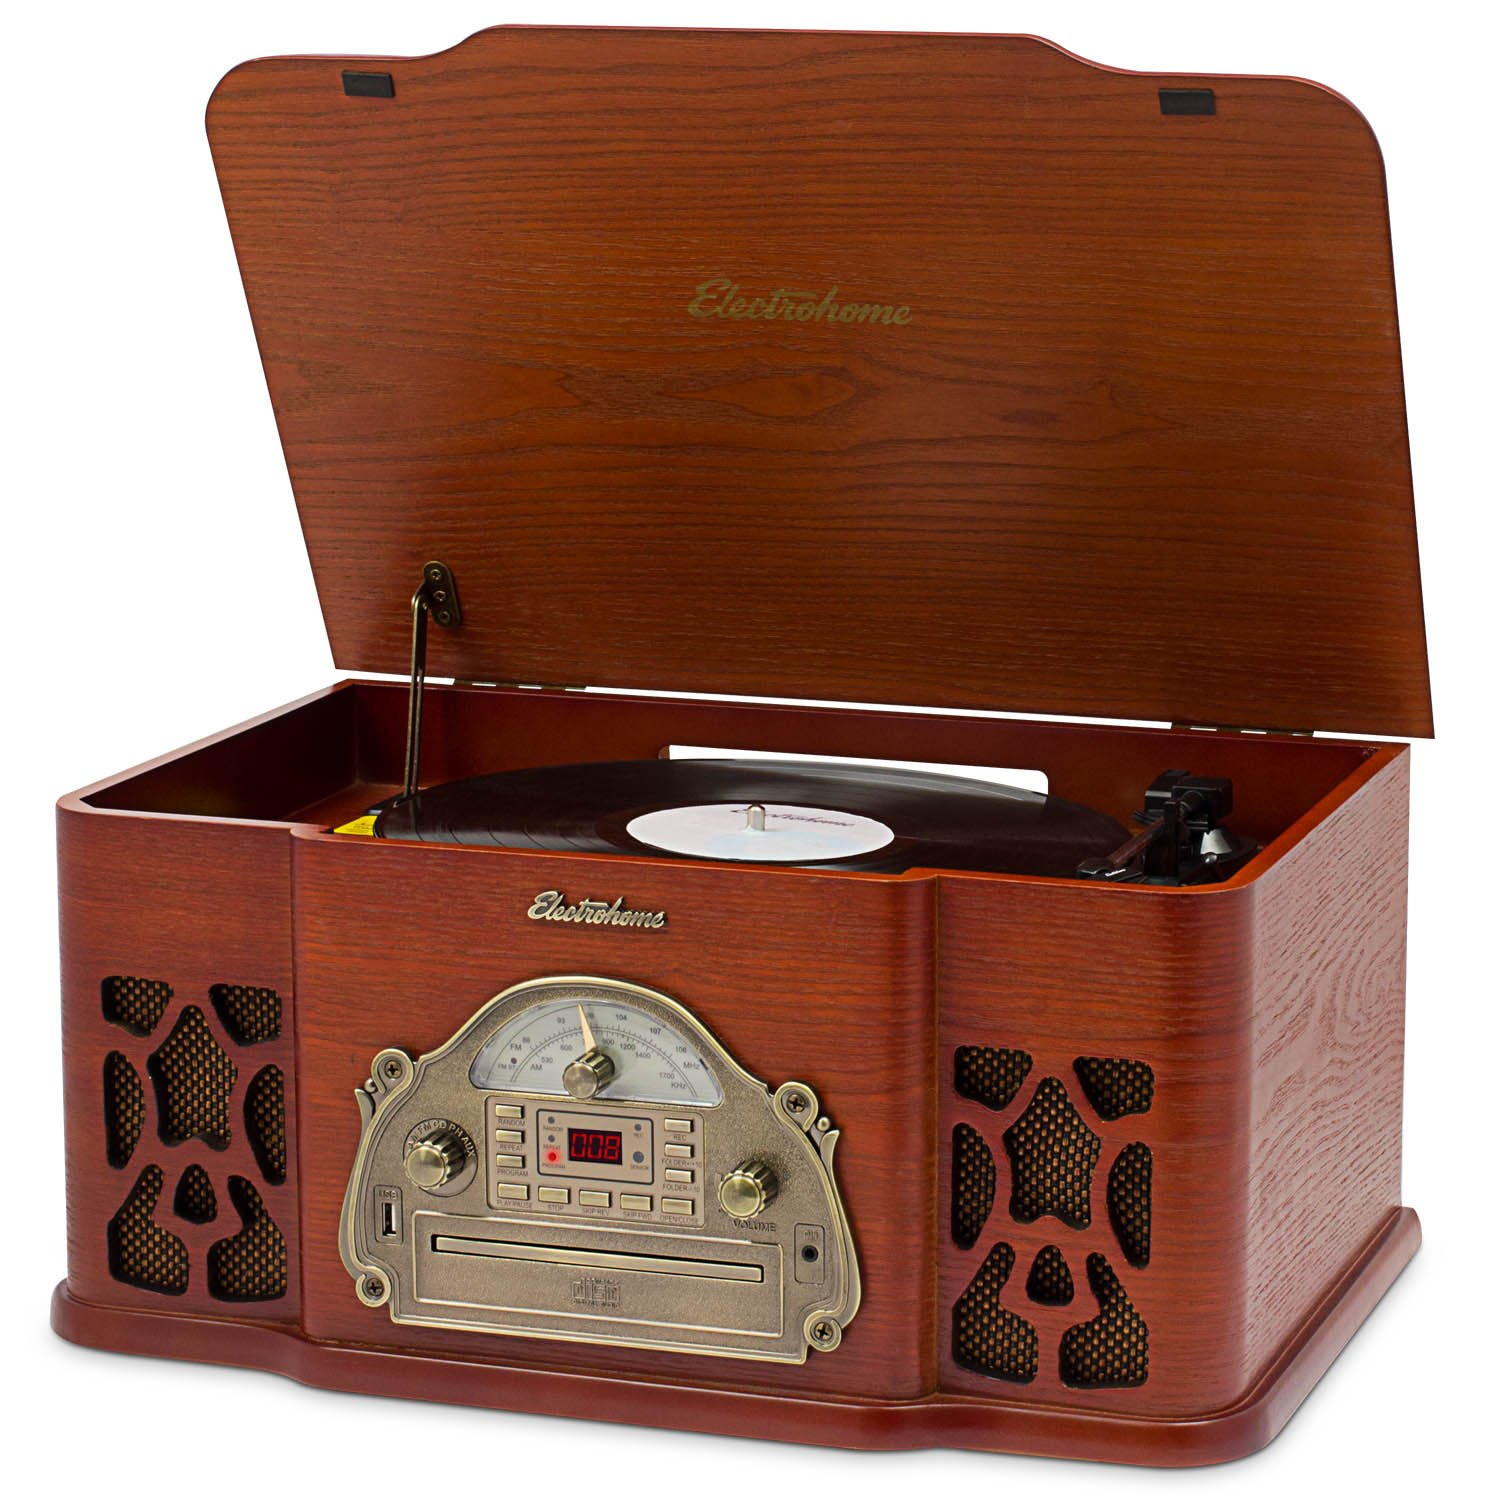 Electrohome Wellington Record Player Retro Vinyl Turntable